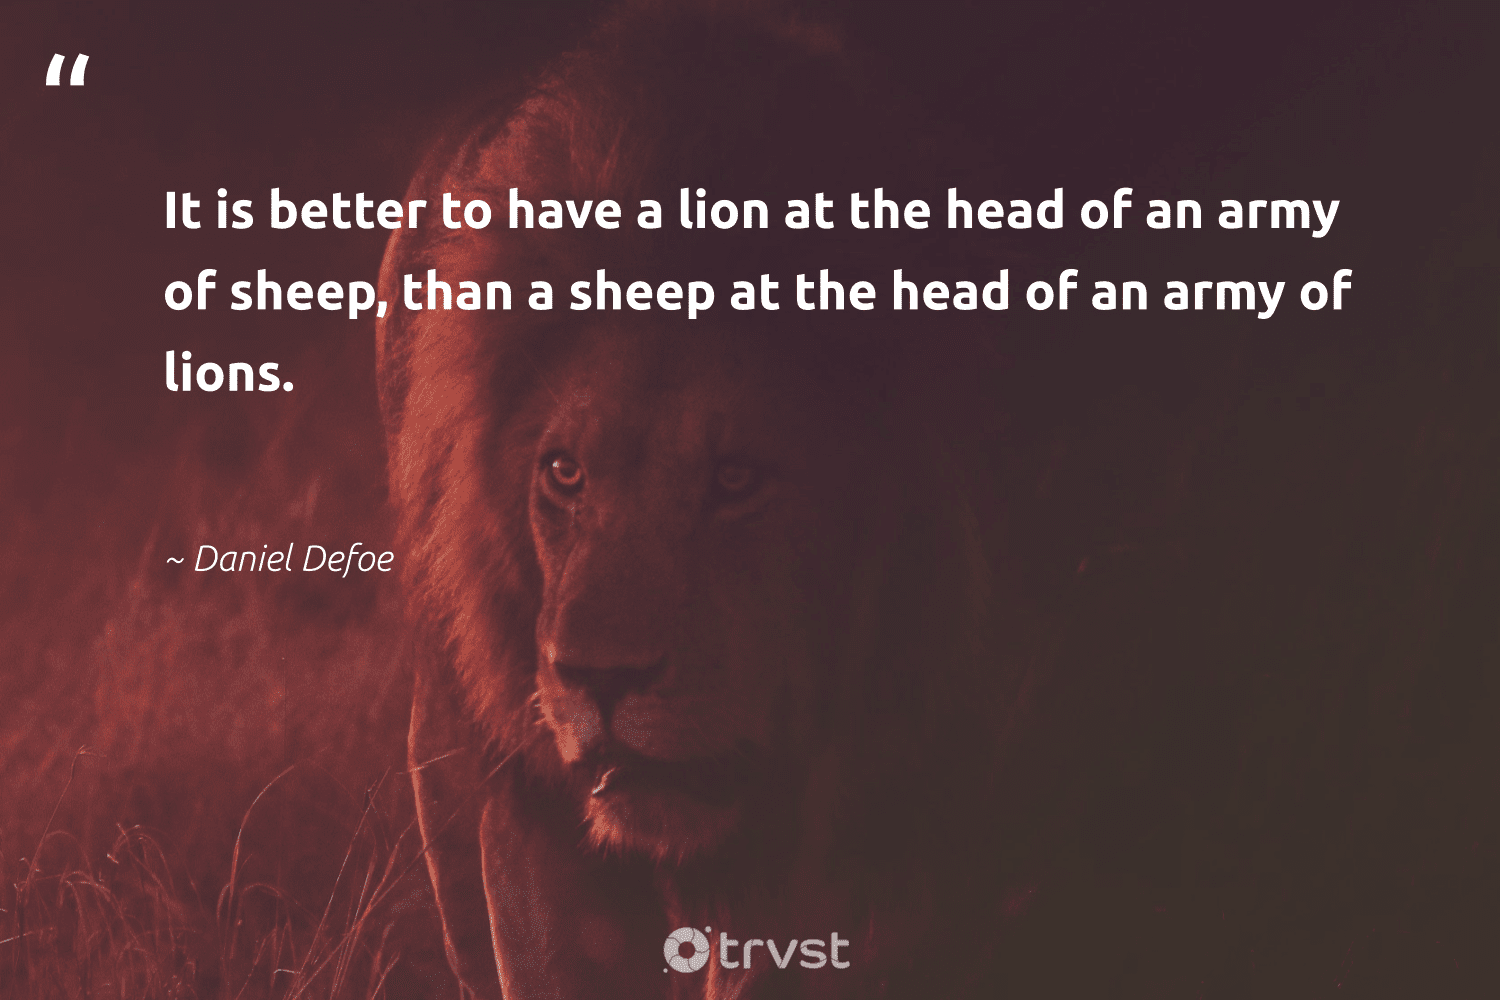 """""""It is better to have a lion at the head of an army of sheep, than a sheep at the head of an army of lions.""""  - Daniel Defoe #trvst #quotes #lion #lions #big5 #dogood #biodiversity #gogreen #perfectnature #ecoconscious #sustainability #socialimpact"""